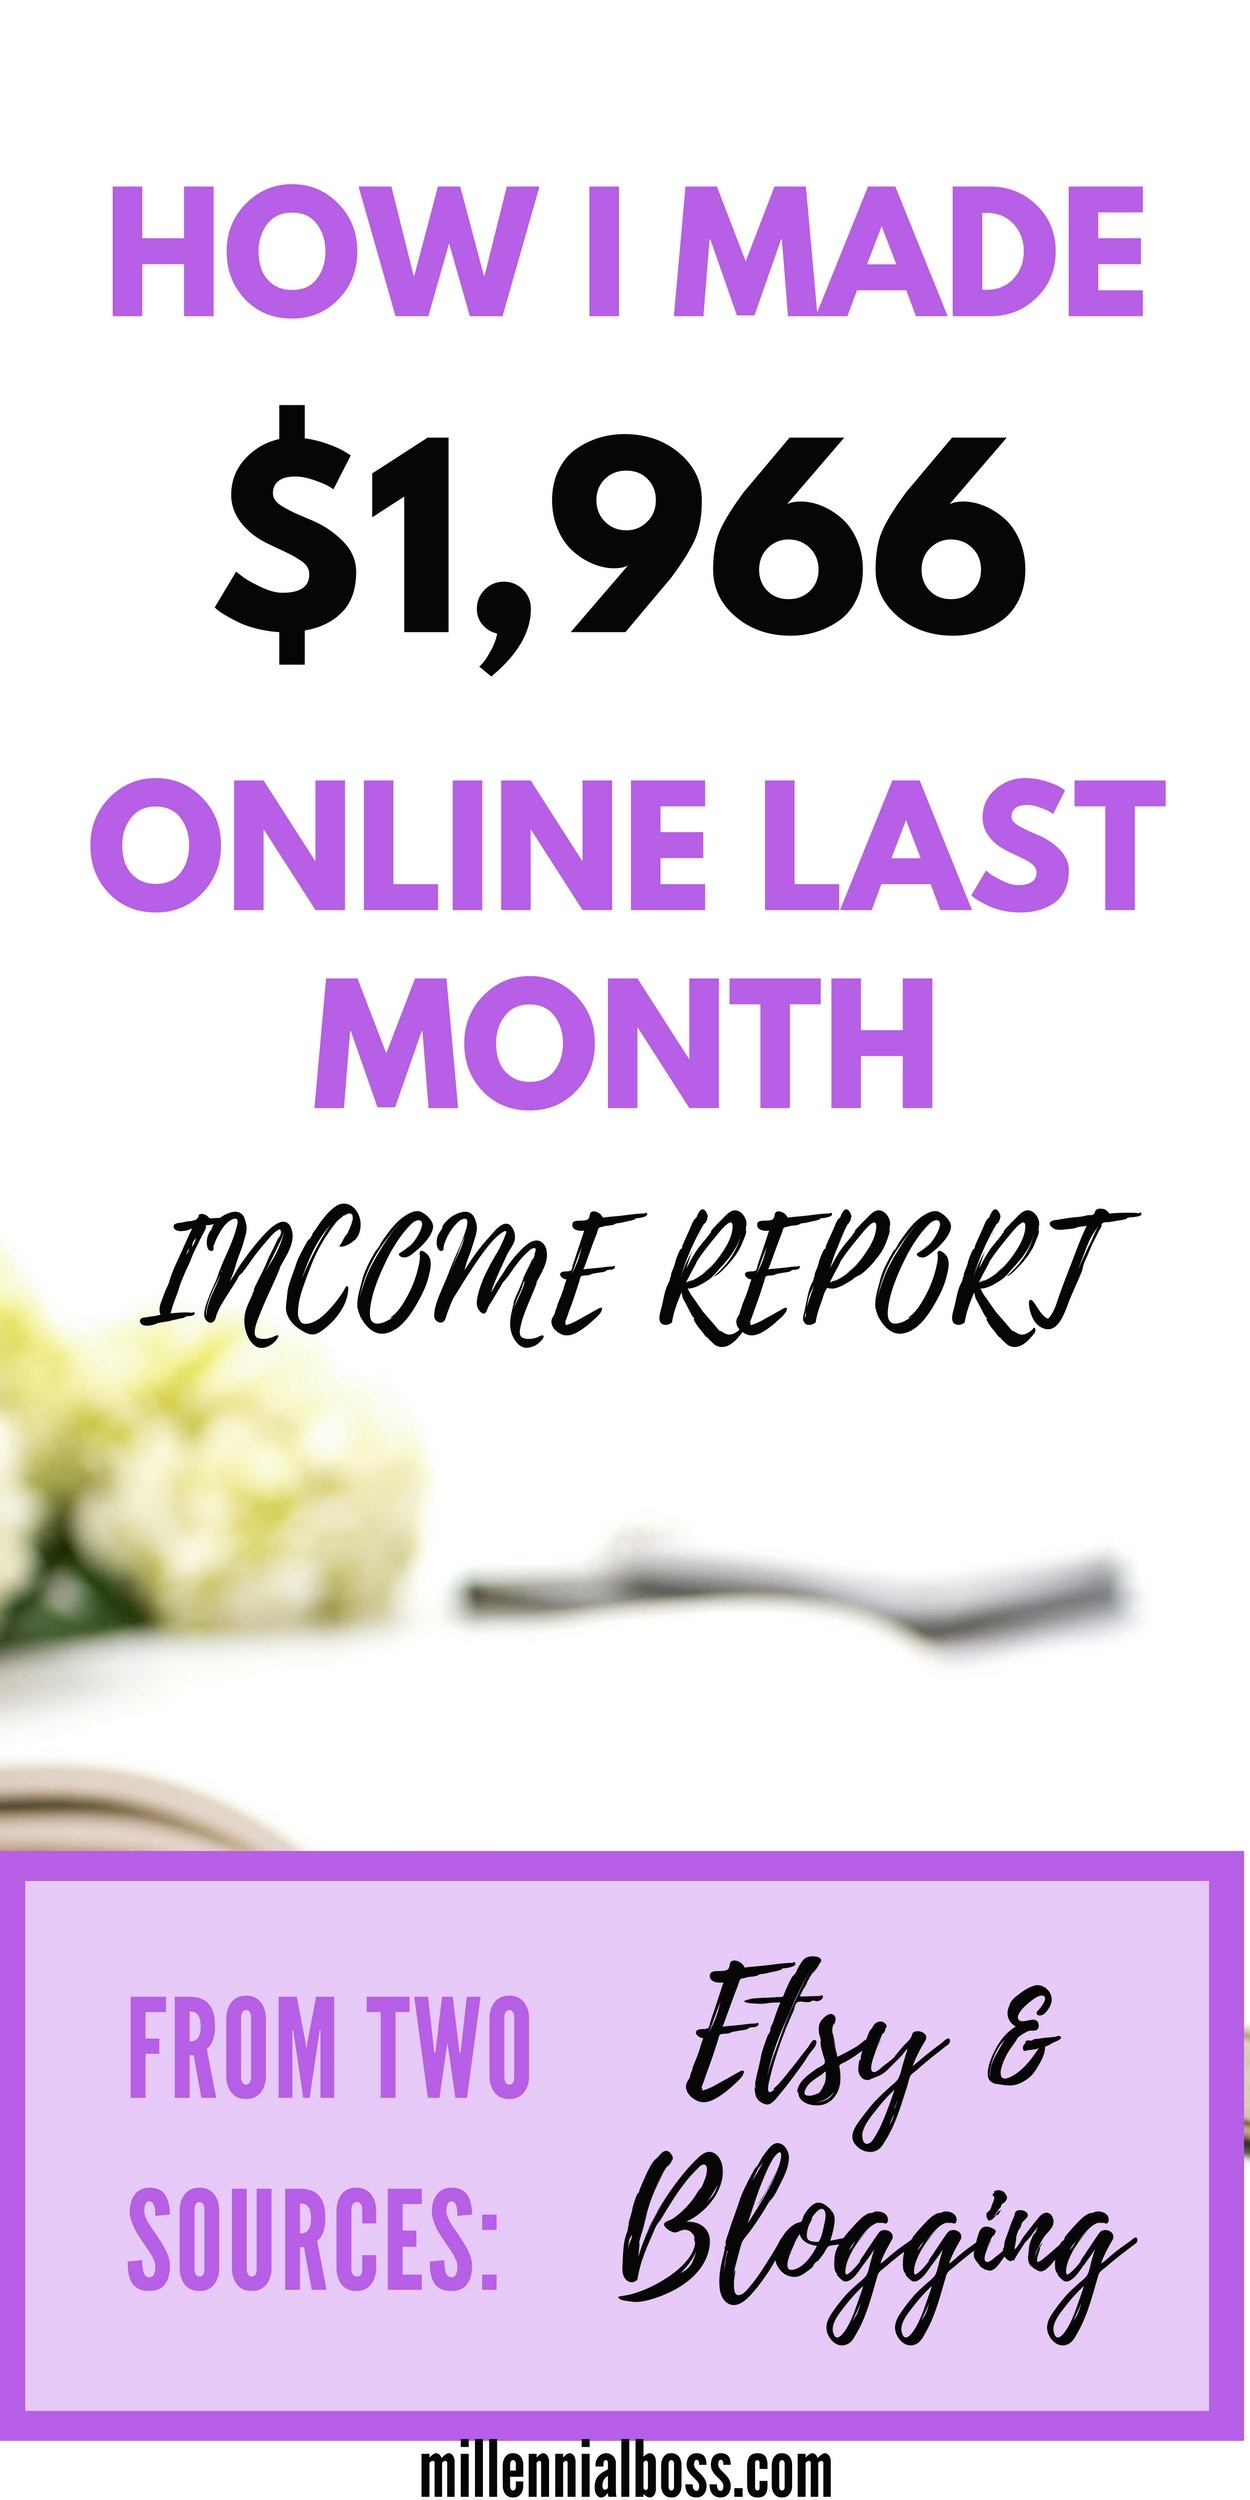 Sharing this blogging income report because it might actually help someone this month with their blogging strategy.